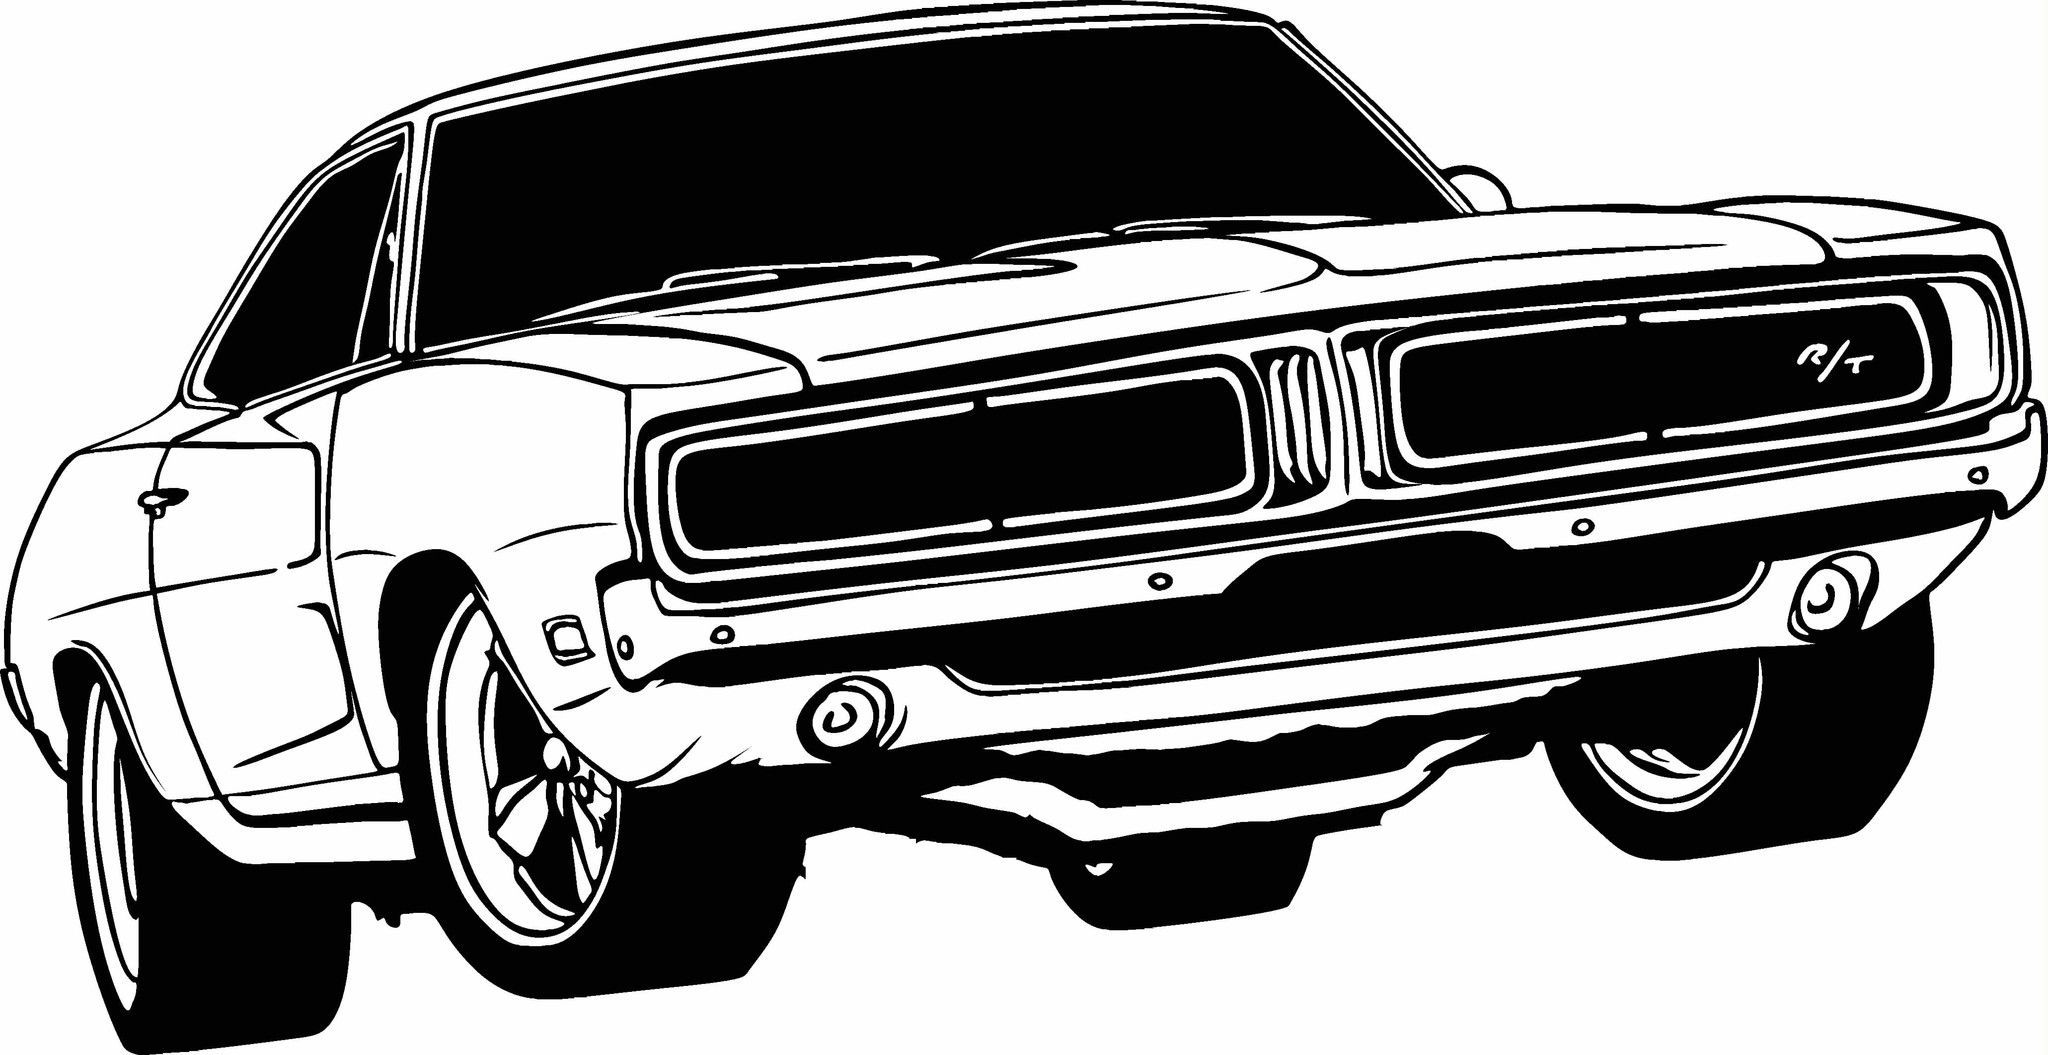 1969 Dodge Charger Vinyl Cut Out Decal, Sticker - Choose your Color ...